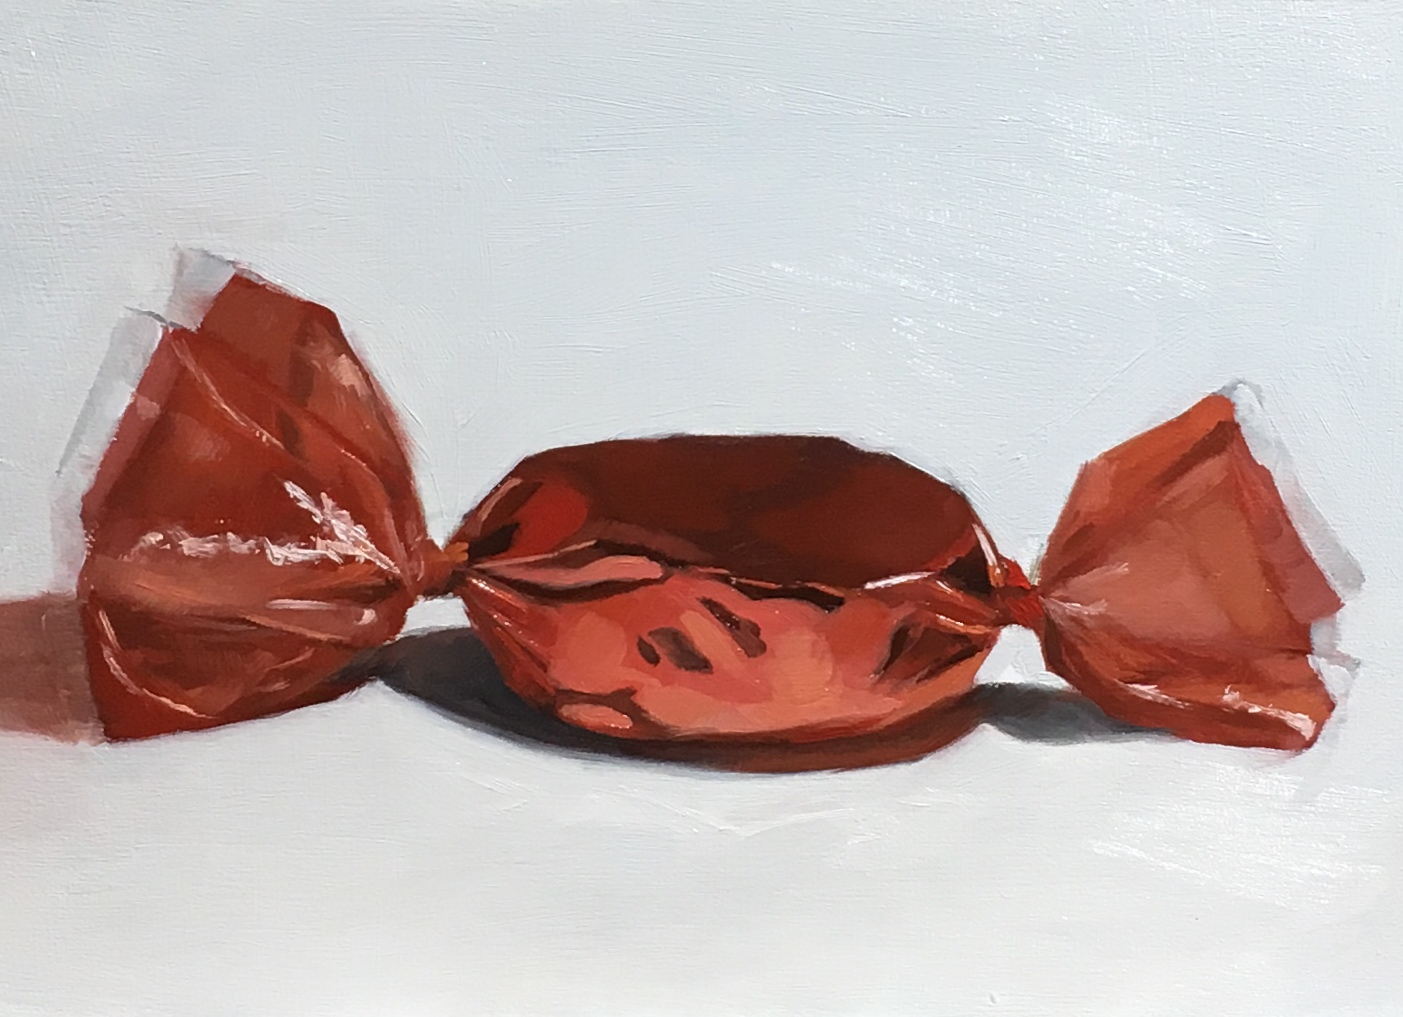 Untitled (red foil candy)